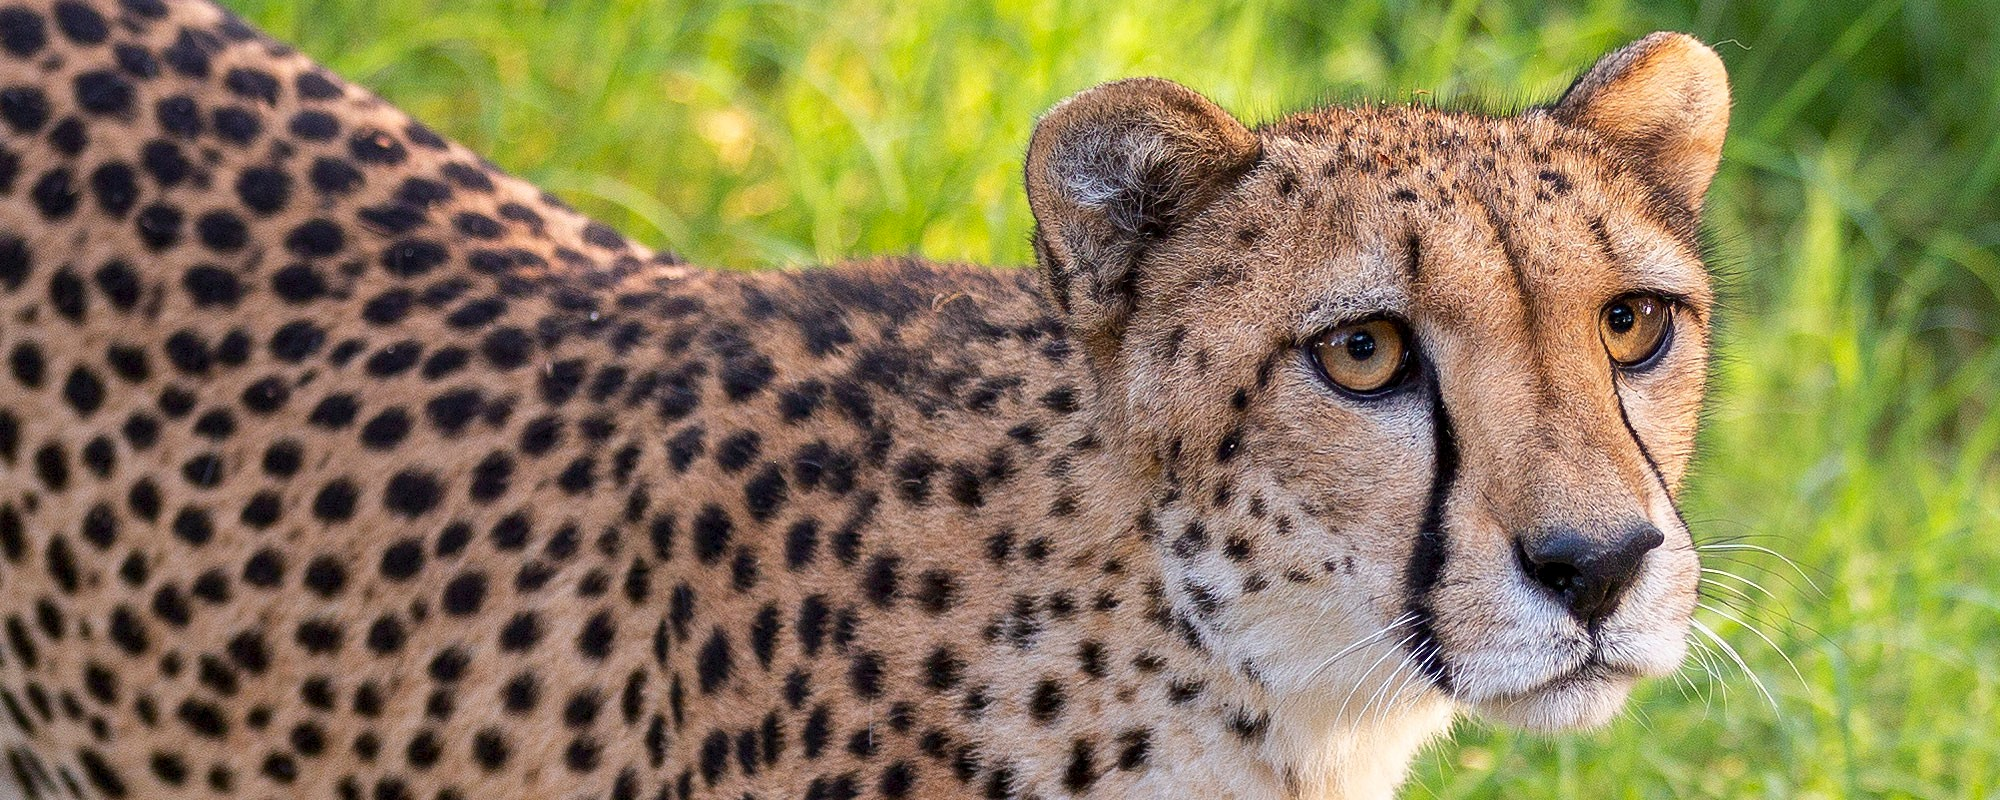 Any animal at The Living Desert can be symbolically adopted including cheetah, zebra, jaguar, giraffe, warthog and many more.